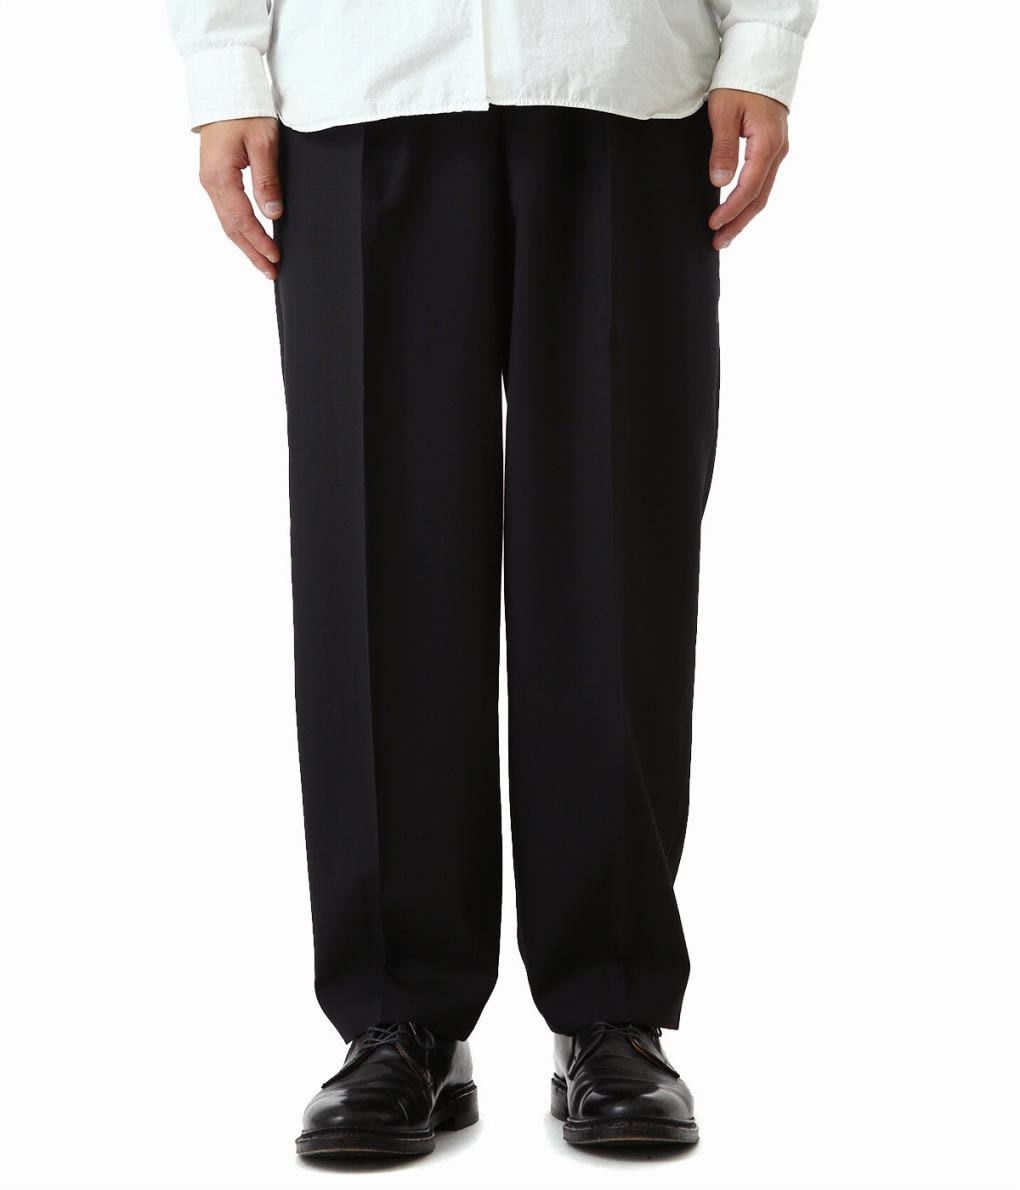 MARKAWARE / マーカウェア : CLASSIC FIT TROUSERS -ORGANIC WOOL TROPICAL- : クラシック フィット トラウザー パンツ : A19A-11PT02C 【MUS】【WIS】